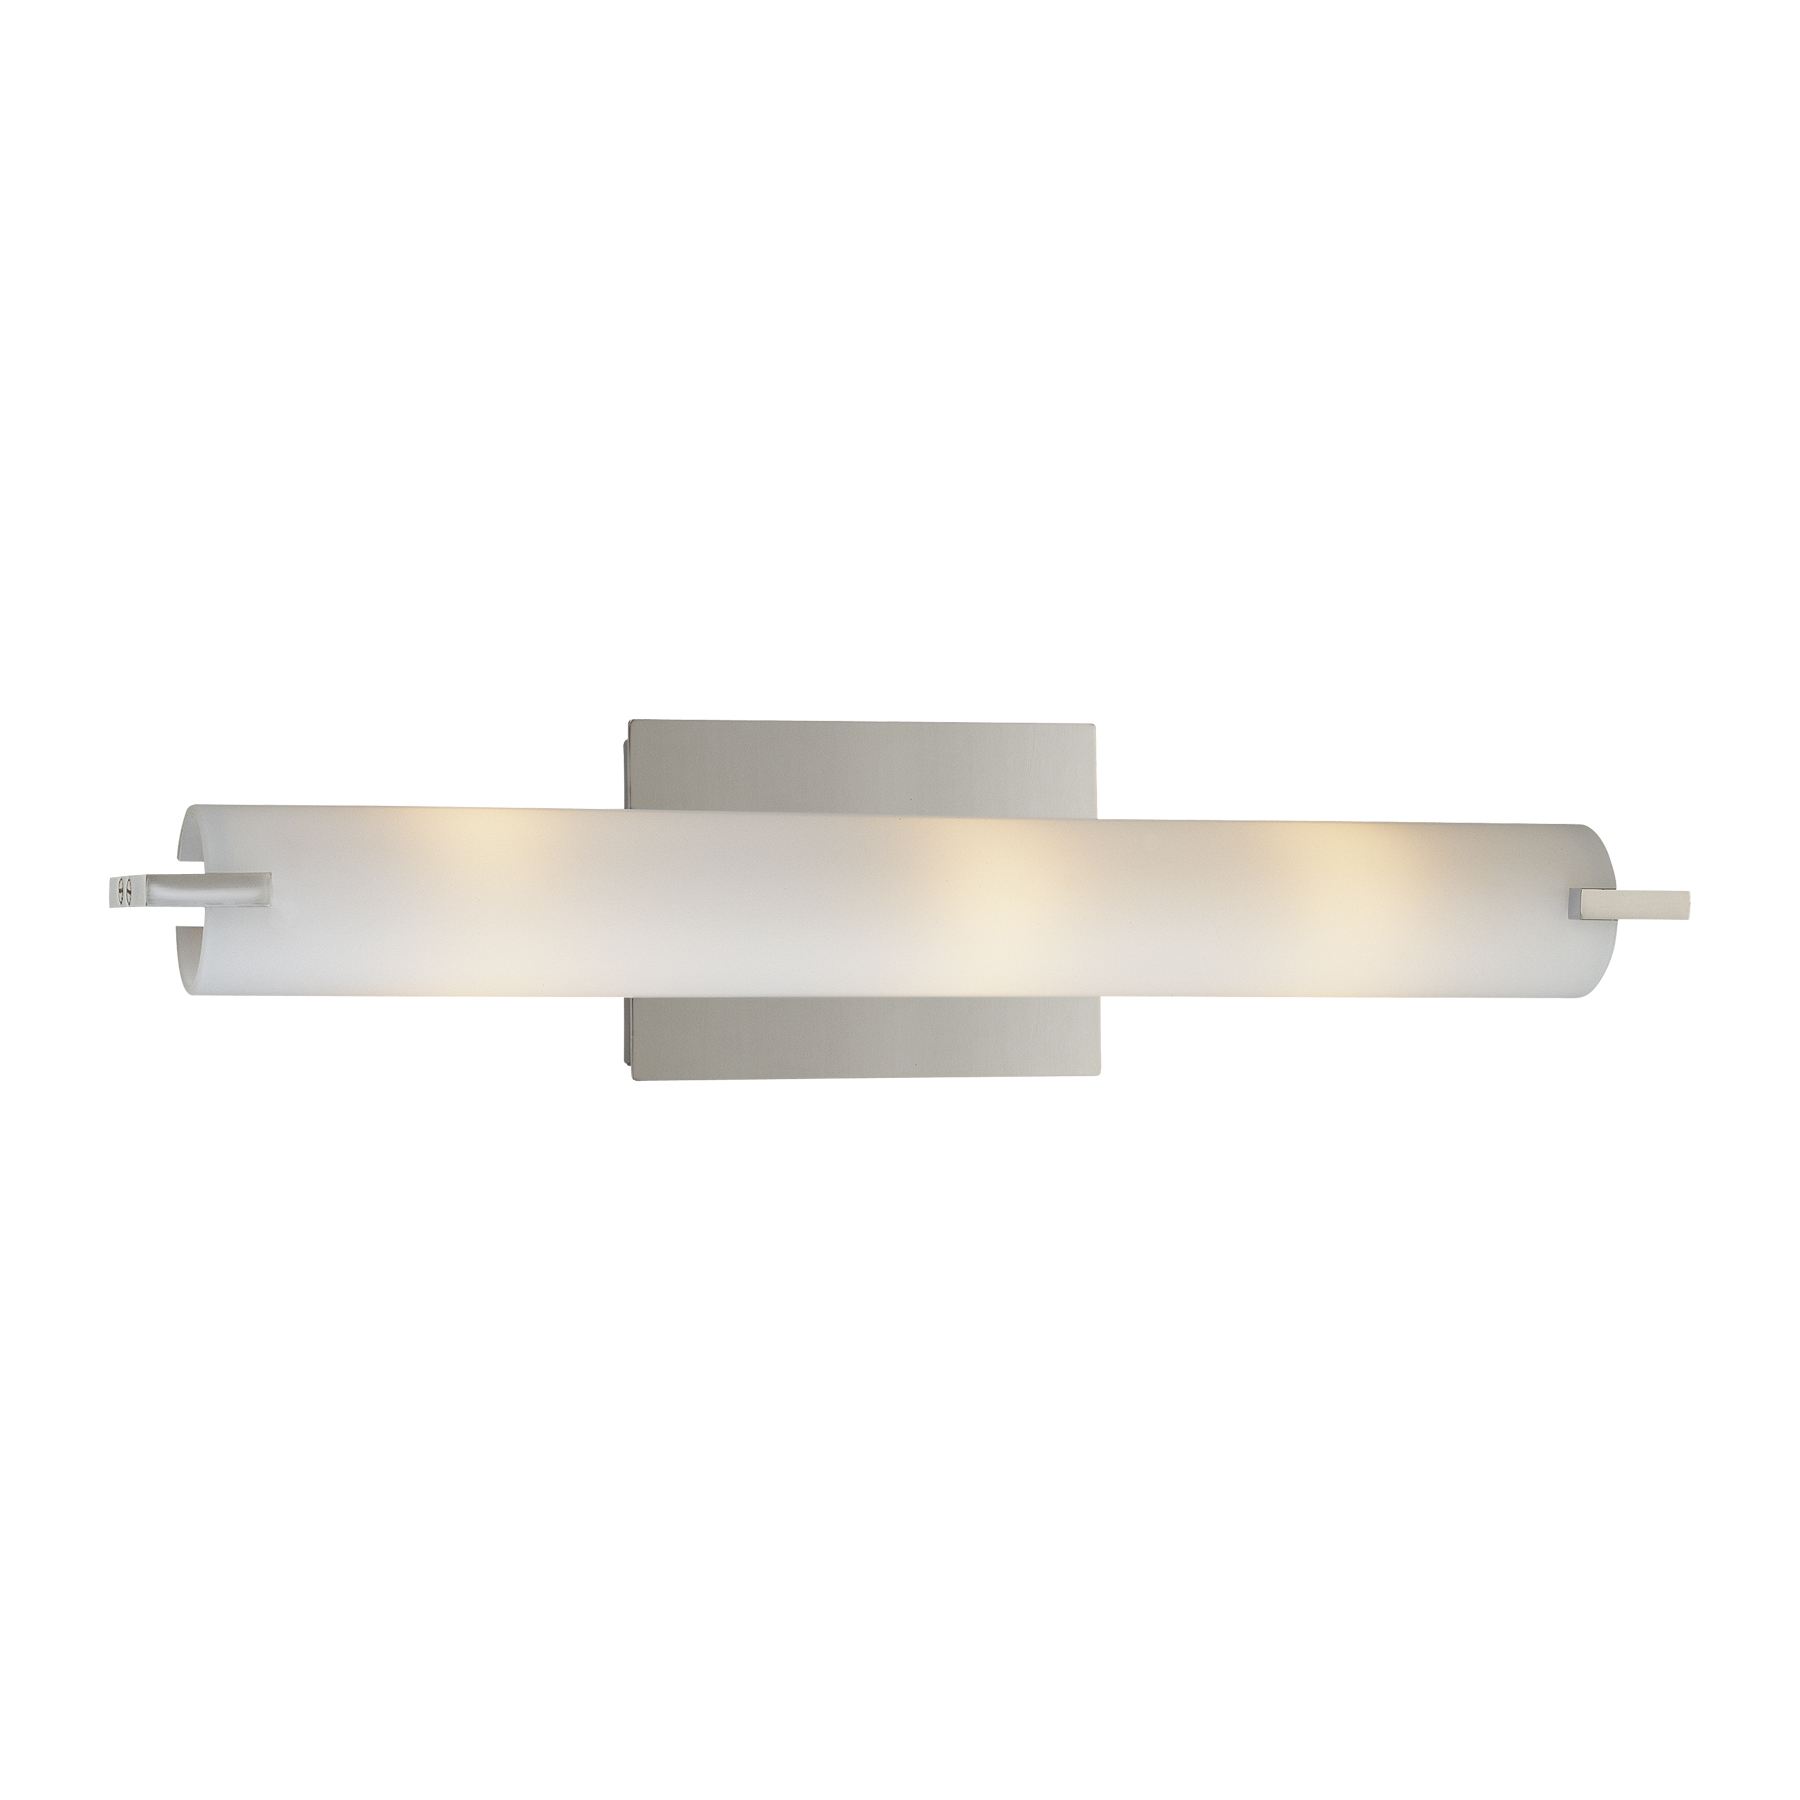 Bathroom Vanity Light by George Kovacs | p5044-077